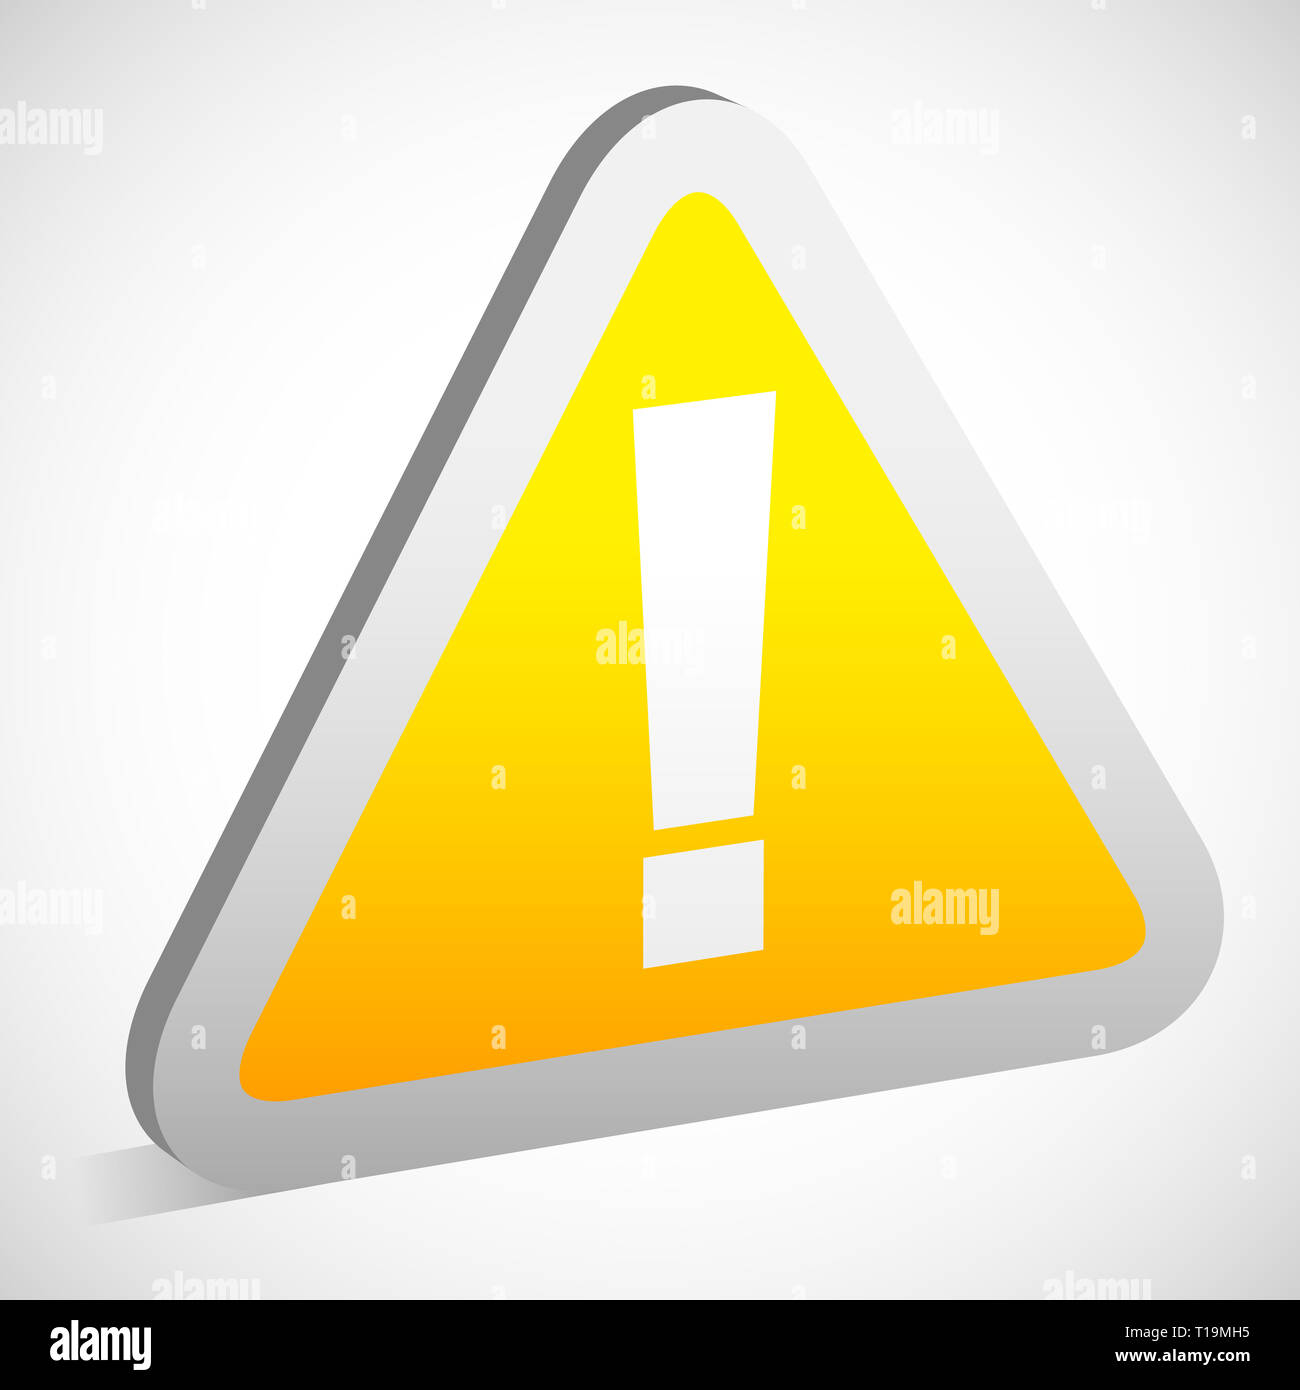 Eps 10 Vector Illustration of Triangular Sign / Road Sign with Exclamation Point - Caution, Attention Warning Concepts - Stock Image